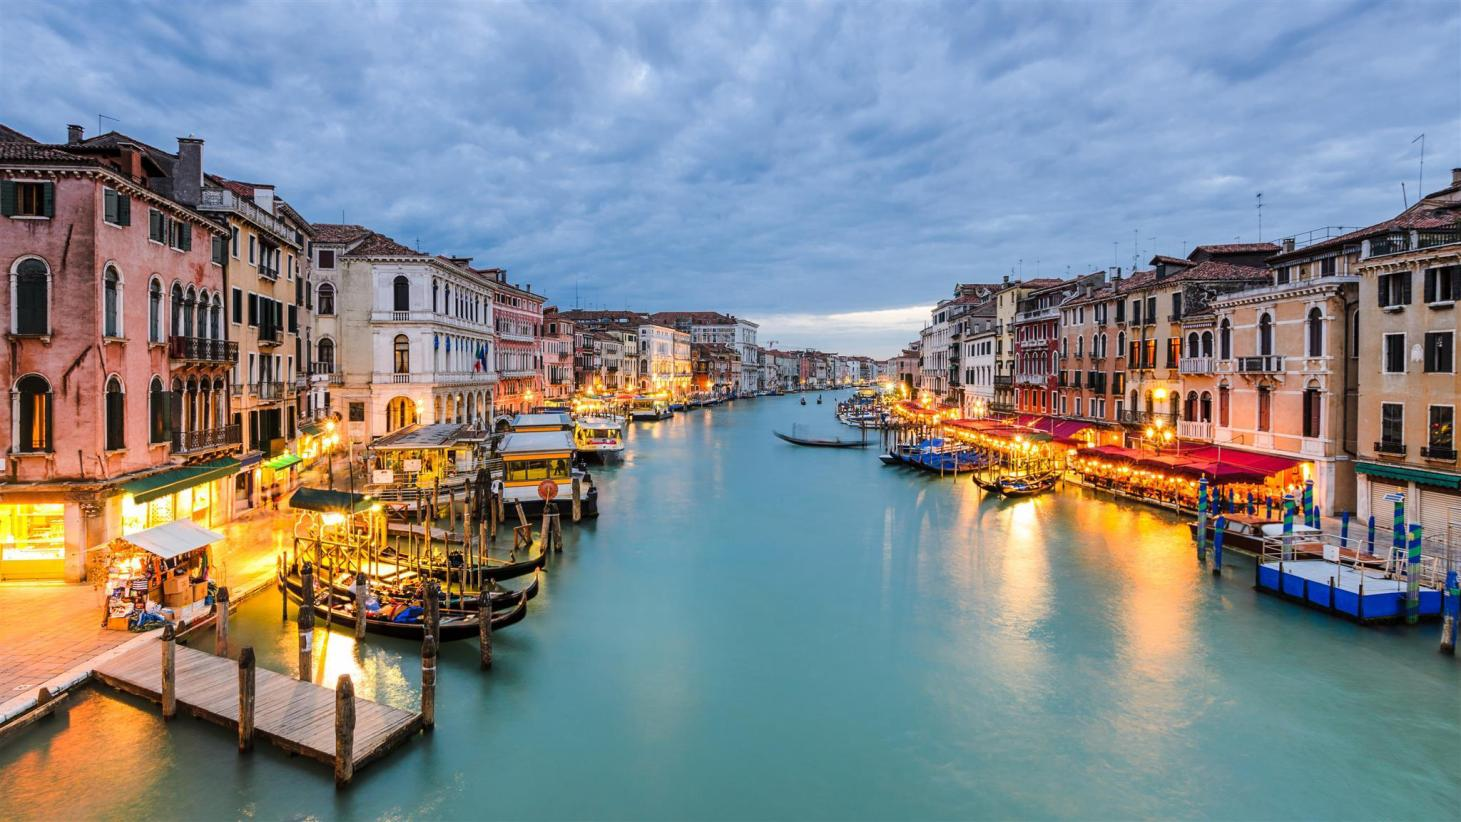 10 Best Venice Hotels Hd Photos Reviews Of Hotels In Venice Italy